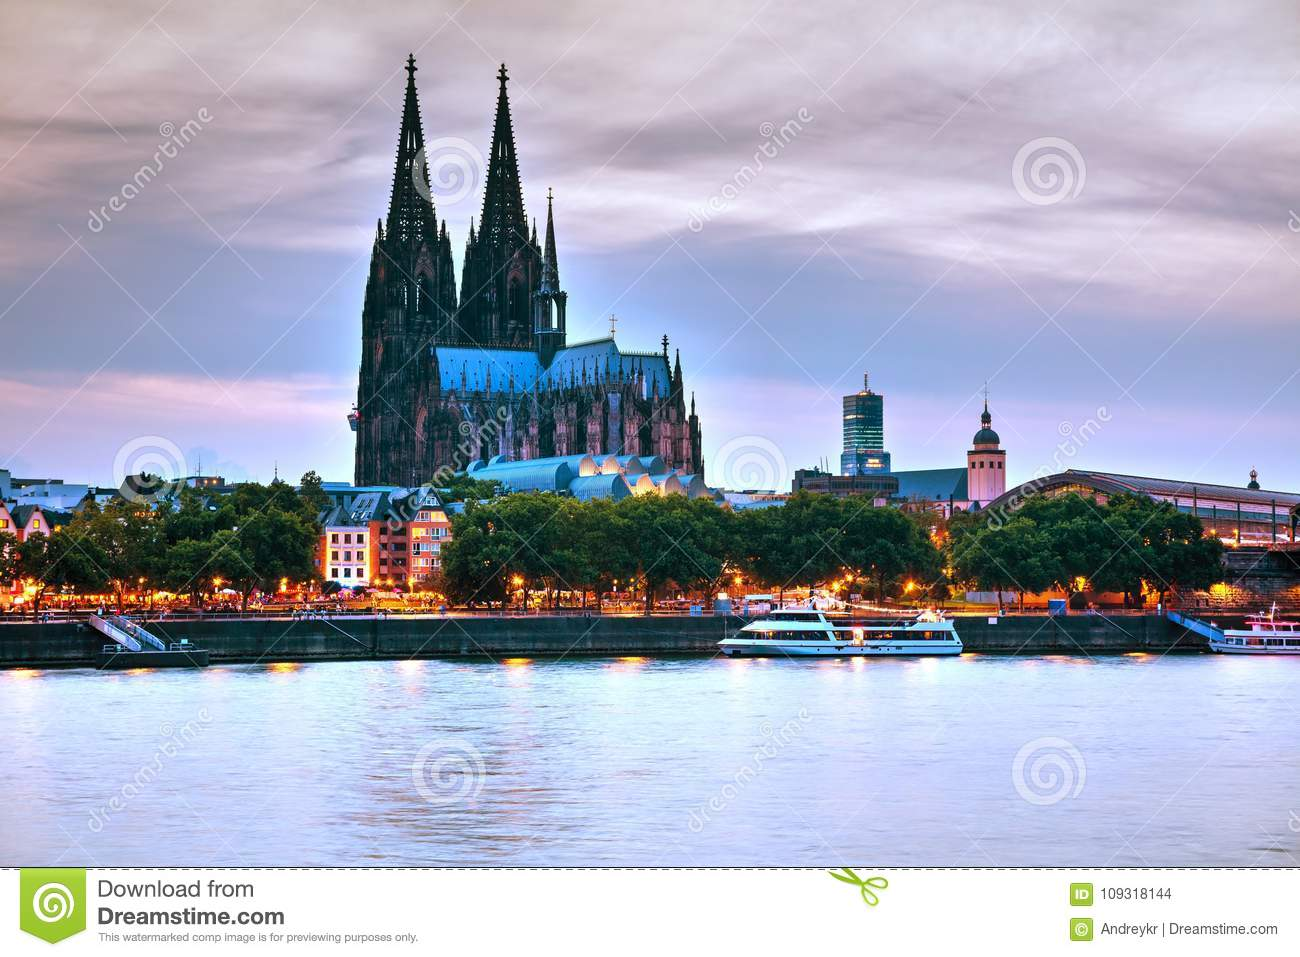 Cologne overview after sunset